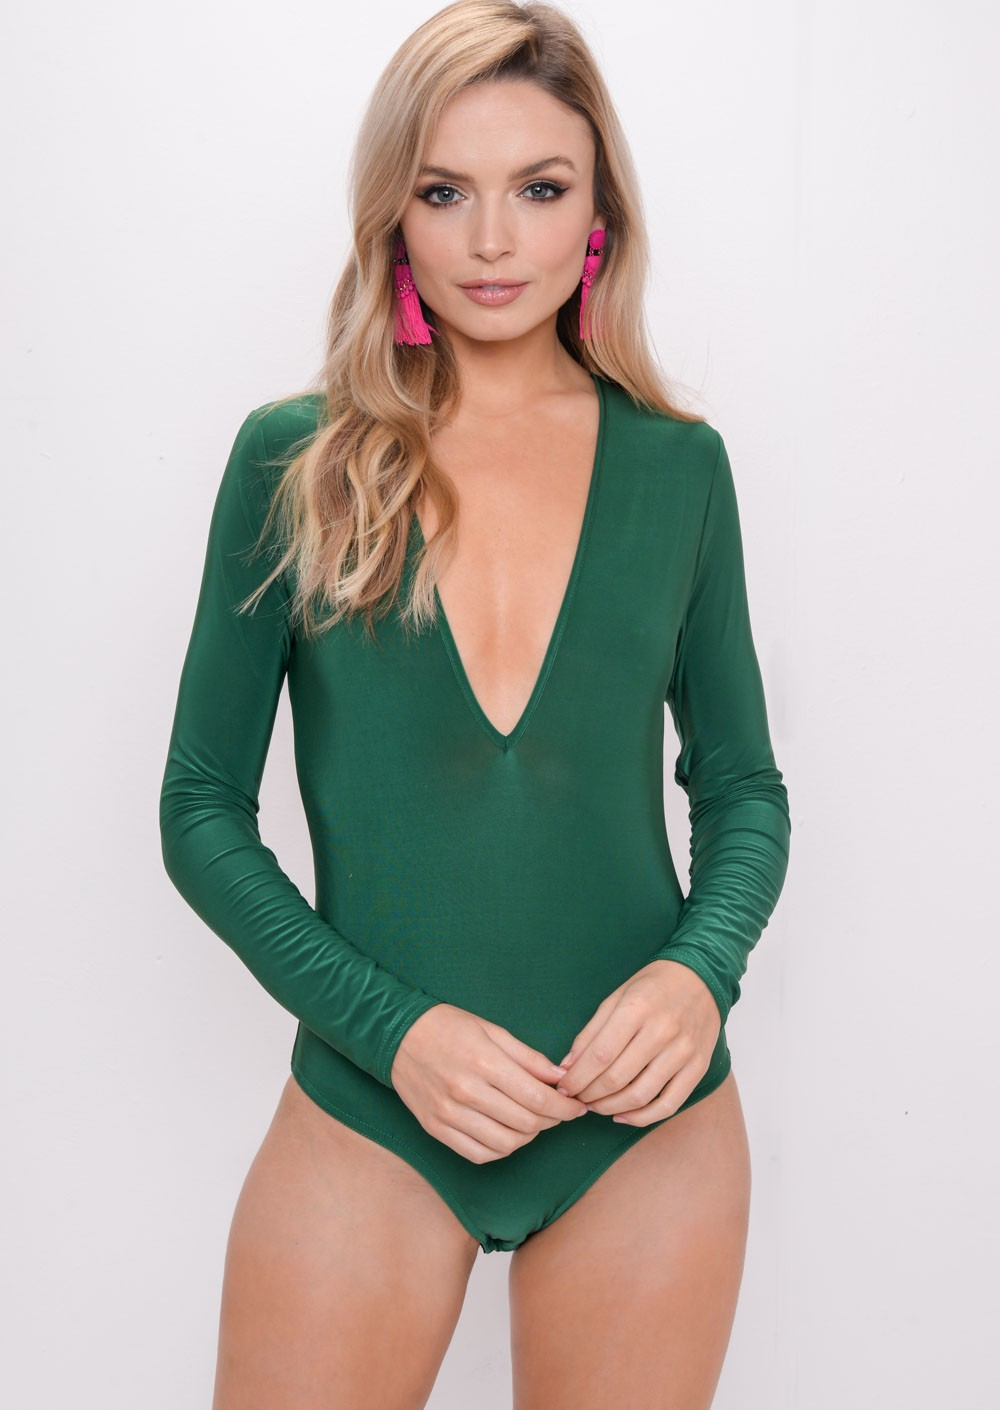 Get the latest womens going out tops at boohoo. From lace and mesh to bandeau and Bardot styles, we've got bodies & bodysuits that are bang on trend.